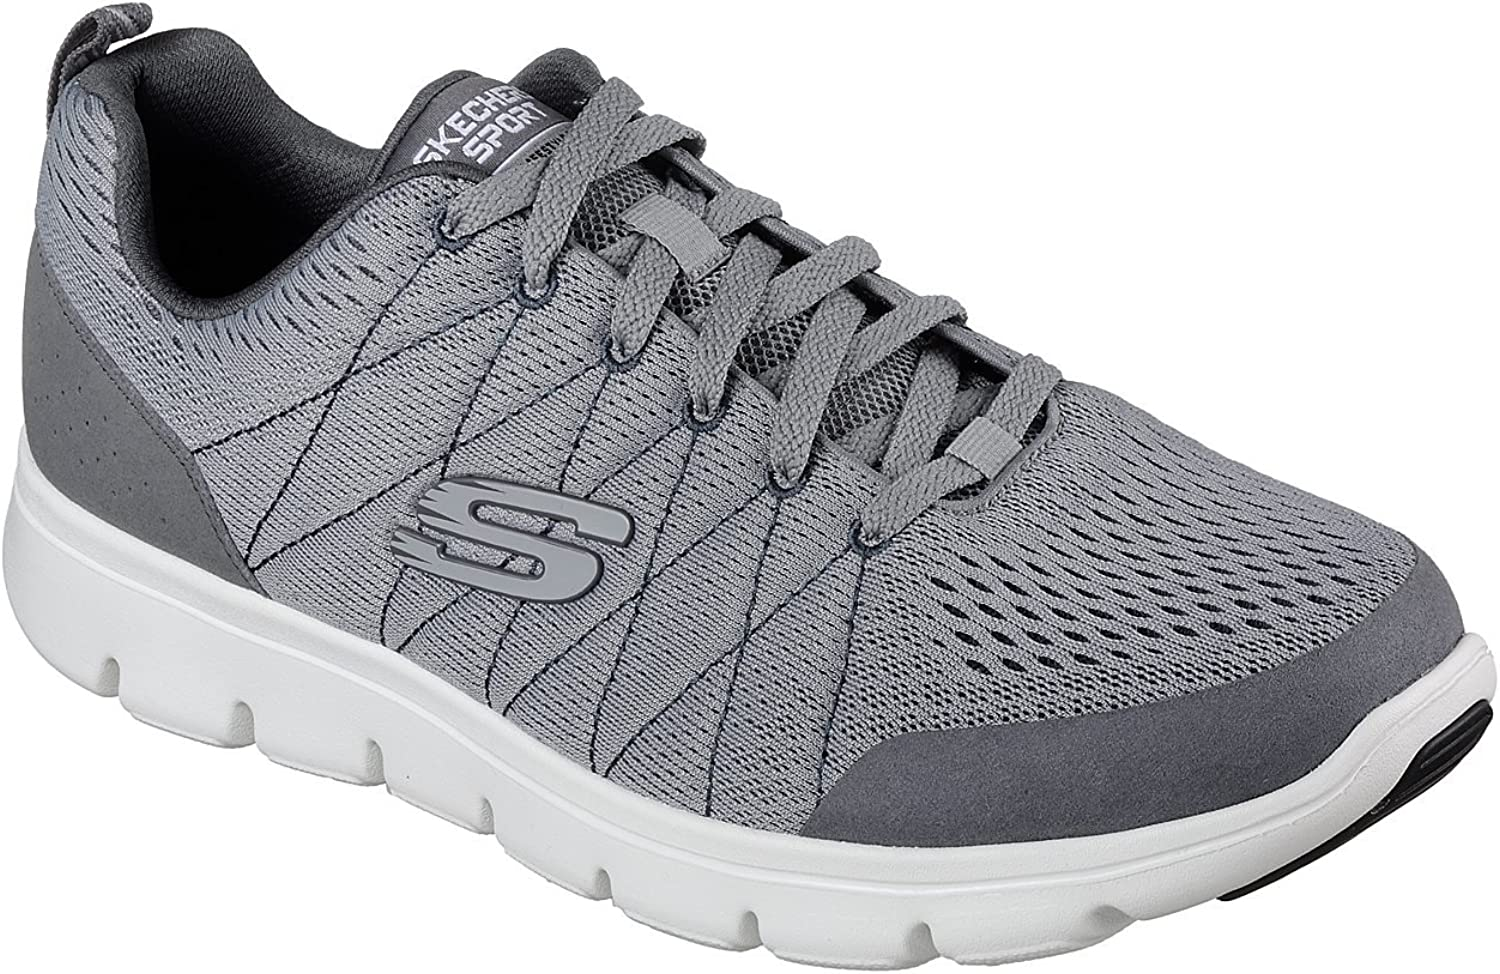 MENS SKECHERS MARAUDER MERSHON GREY MEMORY FOAM TRAINERS SHOES 52836 GRY-UK 7 (EU 41)